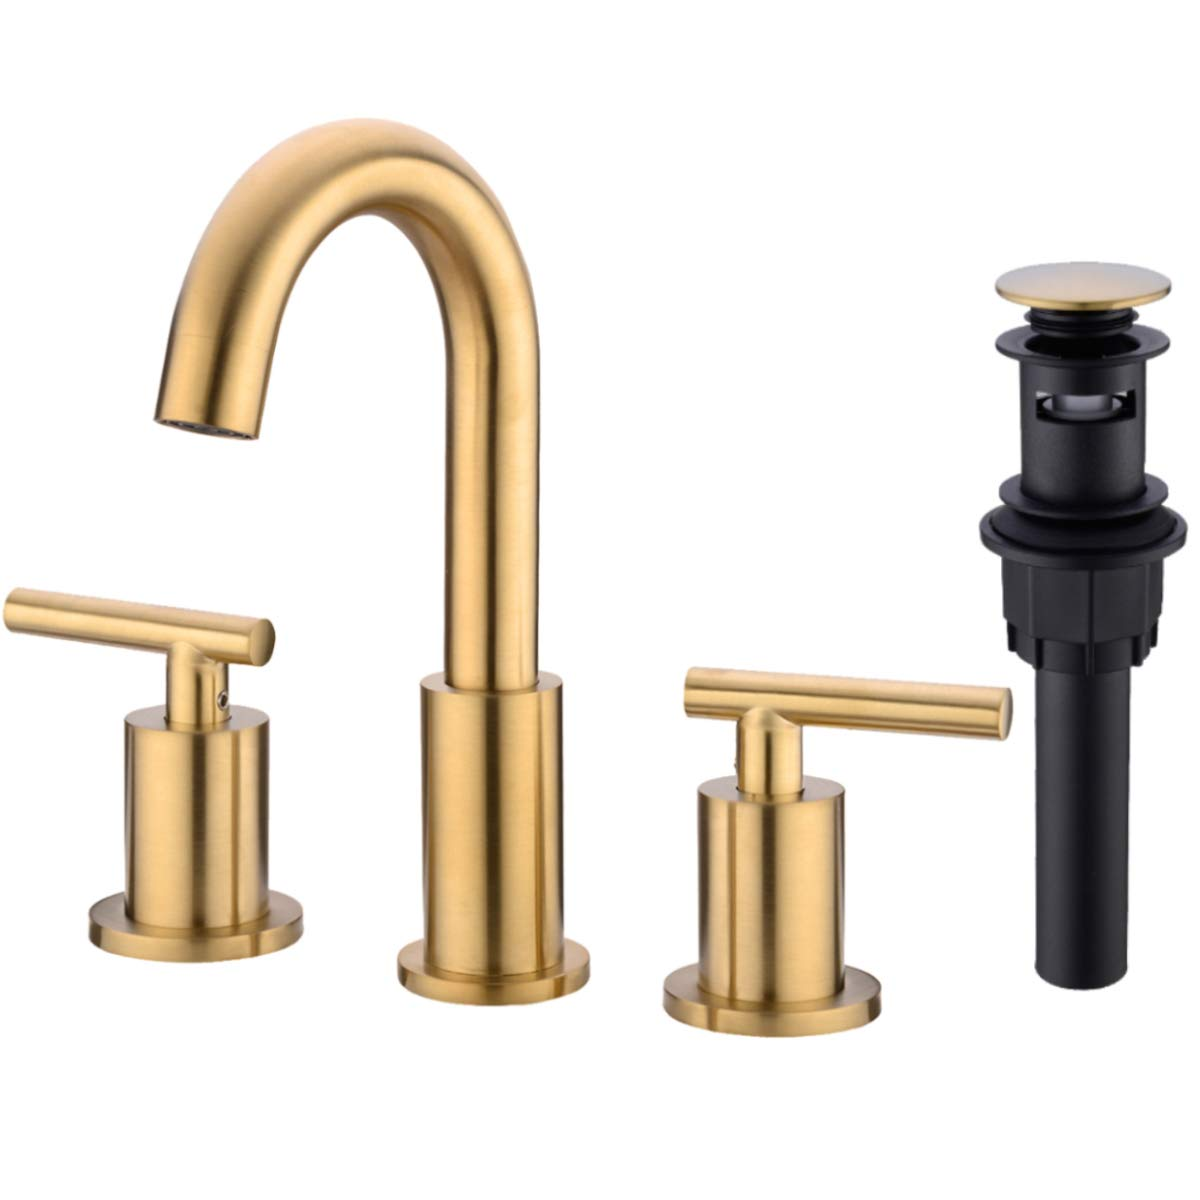 TRUSTMI 2 Handle 8 Inch Brass Bathroom Sink Faucet 3 Hole Widespread with Valve and cUPC Water Supply Hoses, with Overflow Pop Up Drain Assembly, Brushed Gold by TRUSTMI